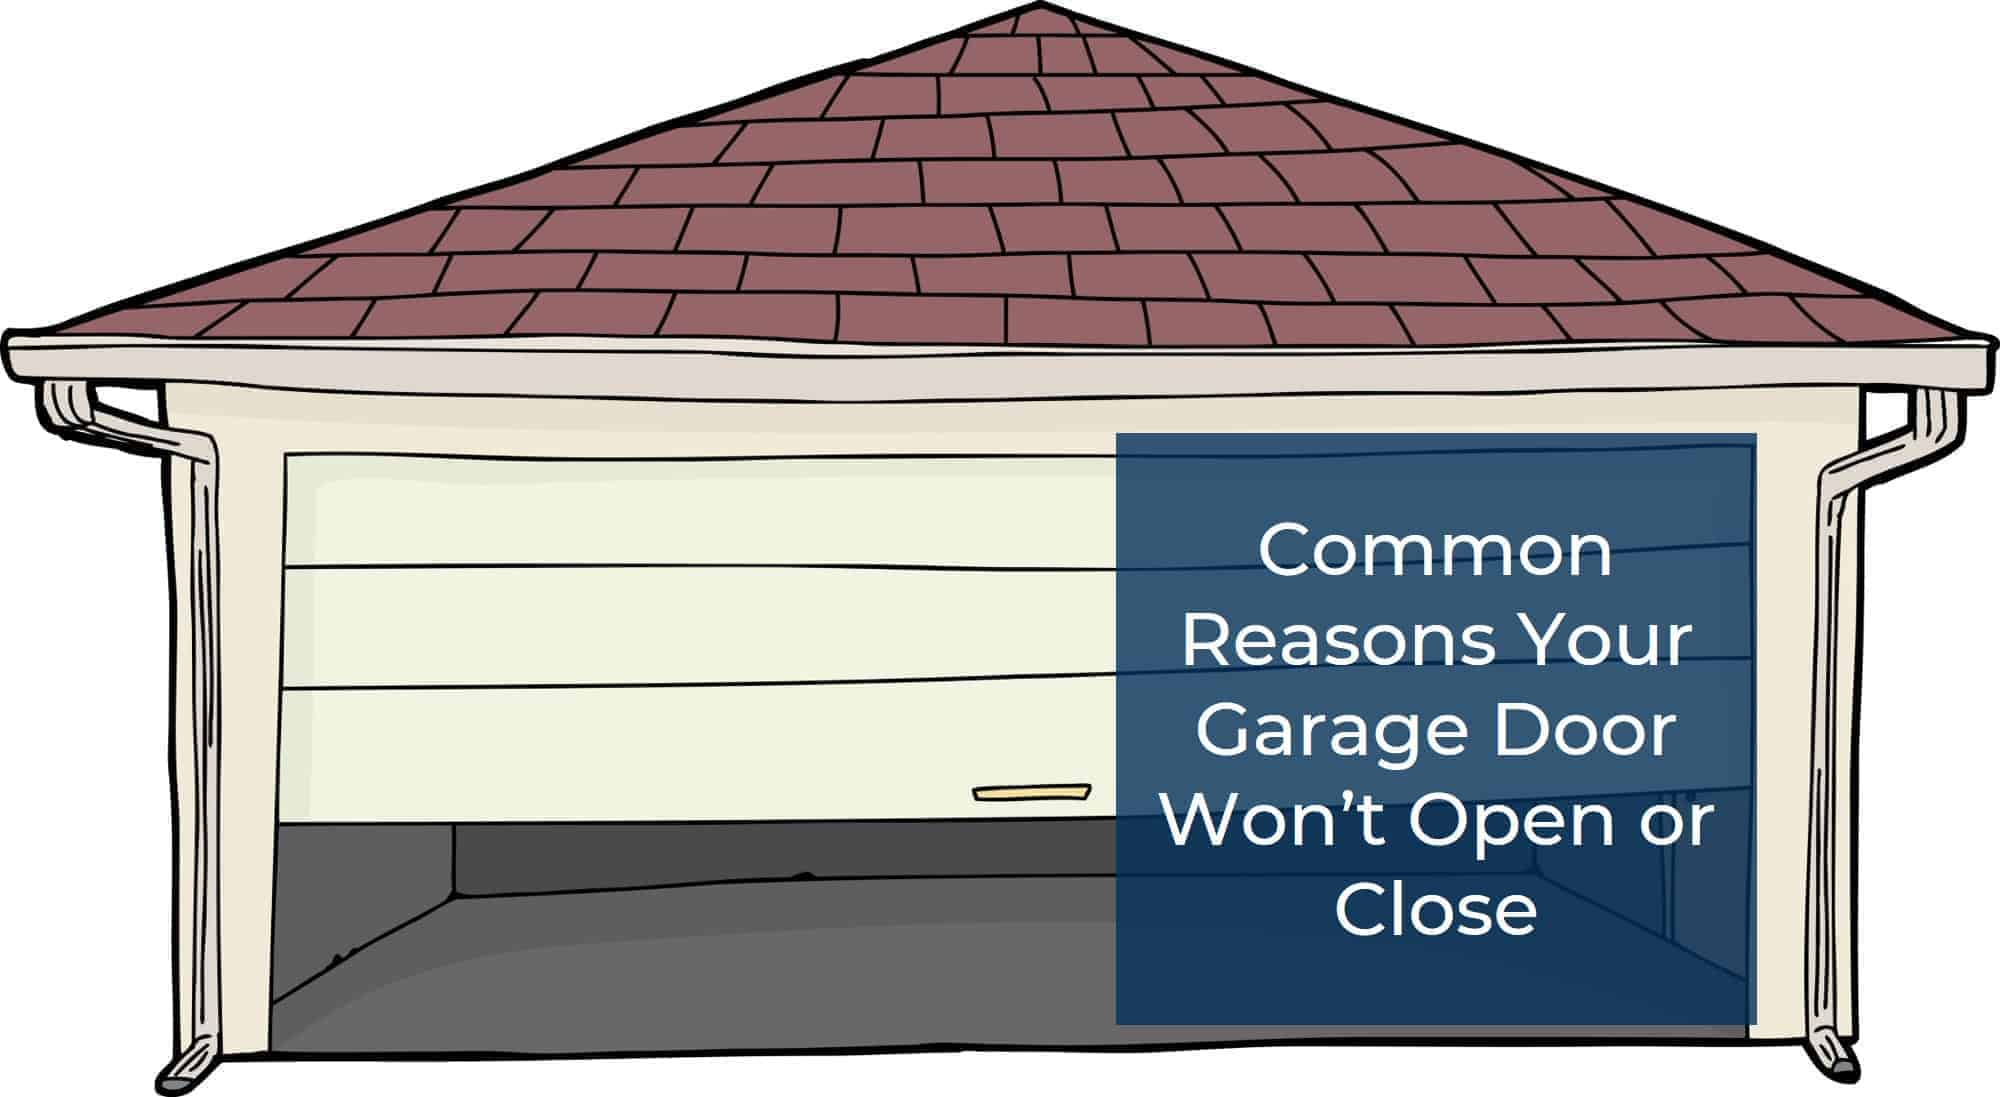 10 Common Reasons Your Automatic Garage Door Won't Work